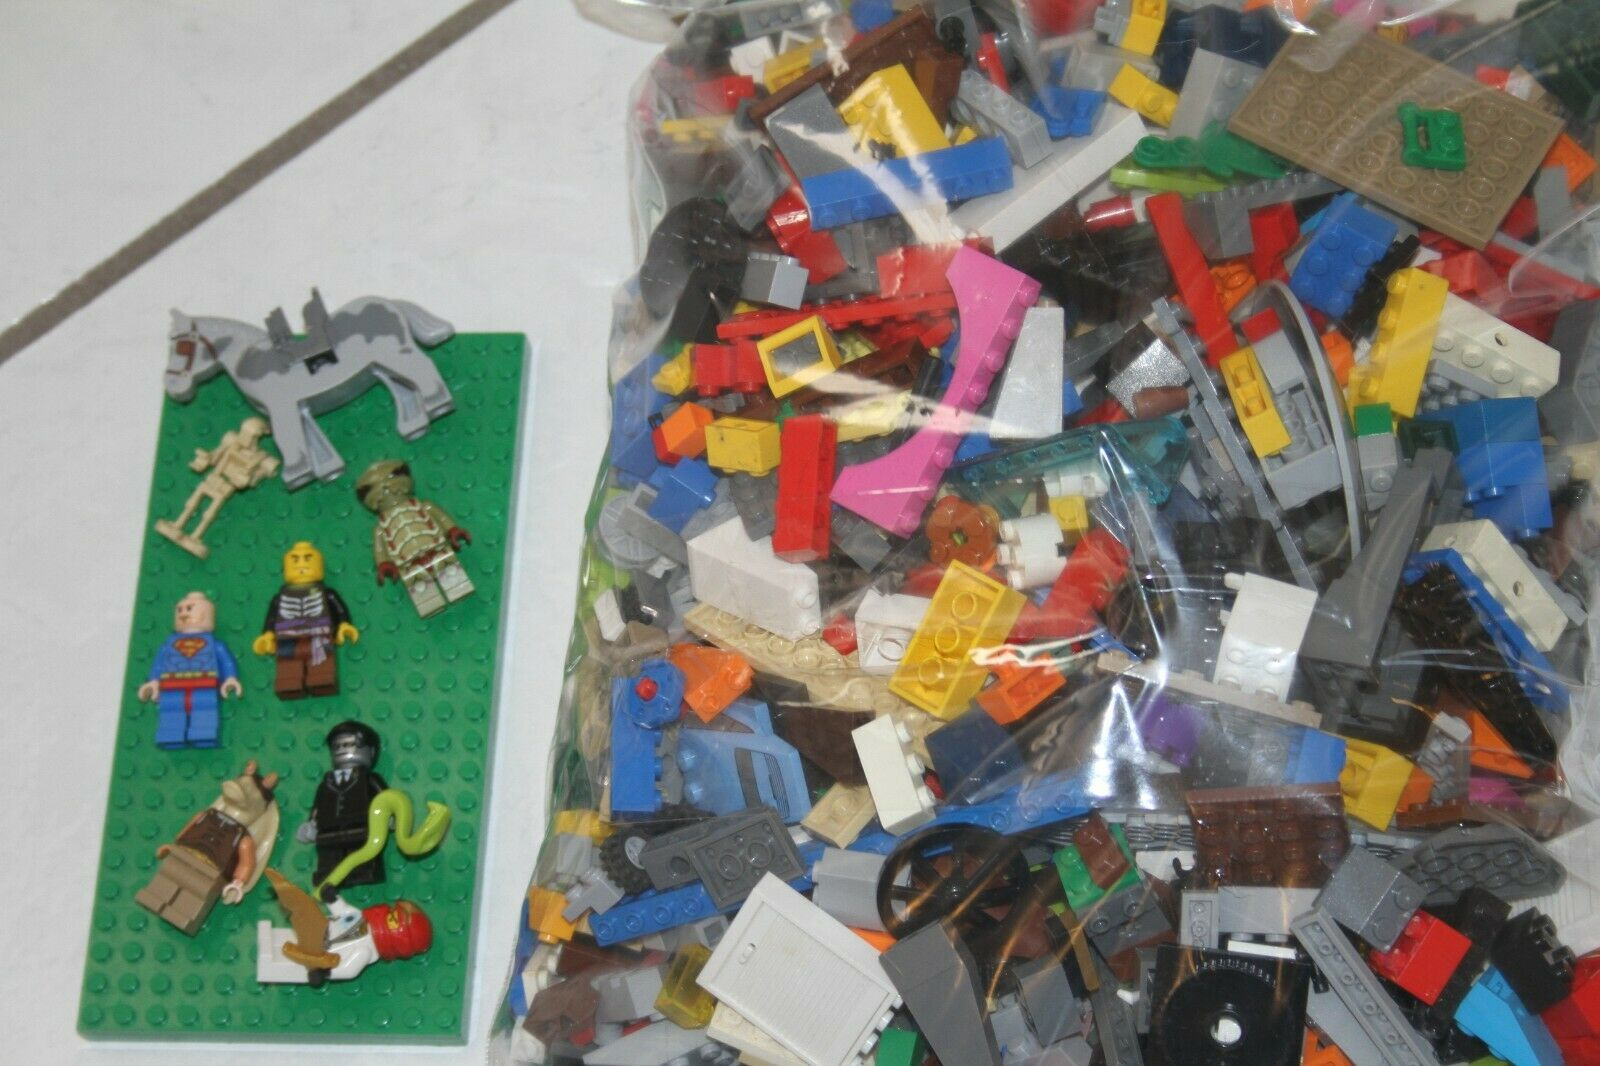 5 1 4 lbs Pounds Lego Parts Pieces from HUGE BULK LOT 8 Minifigures Included